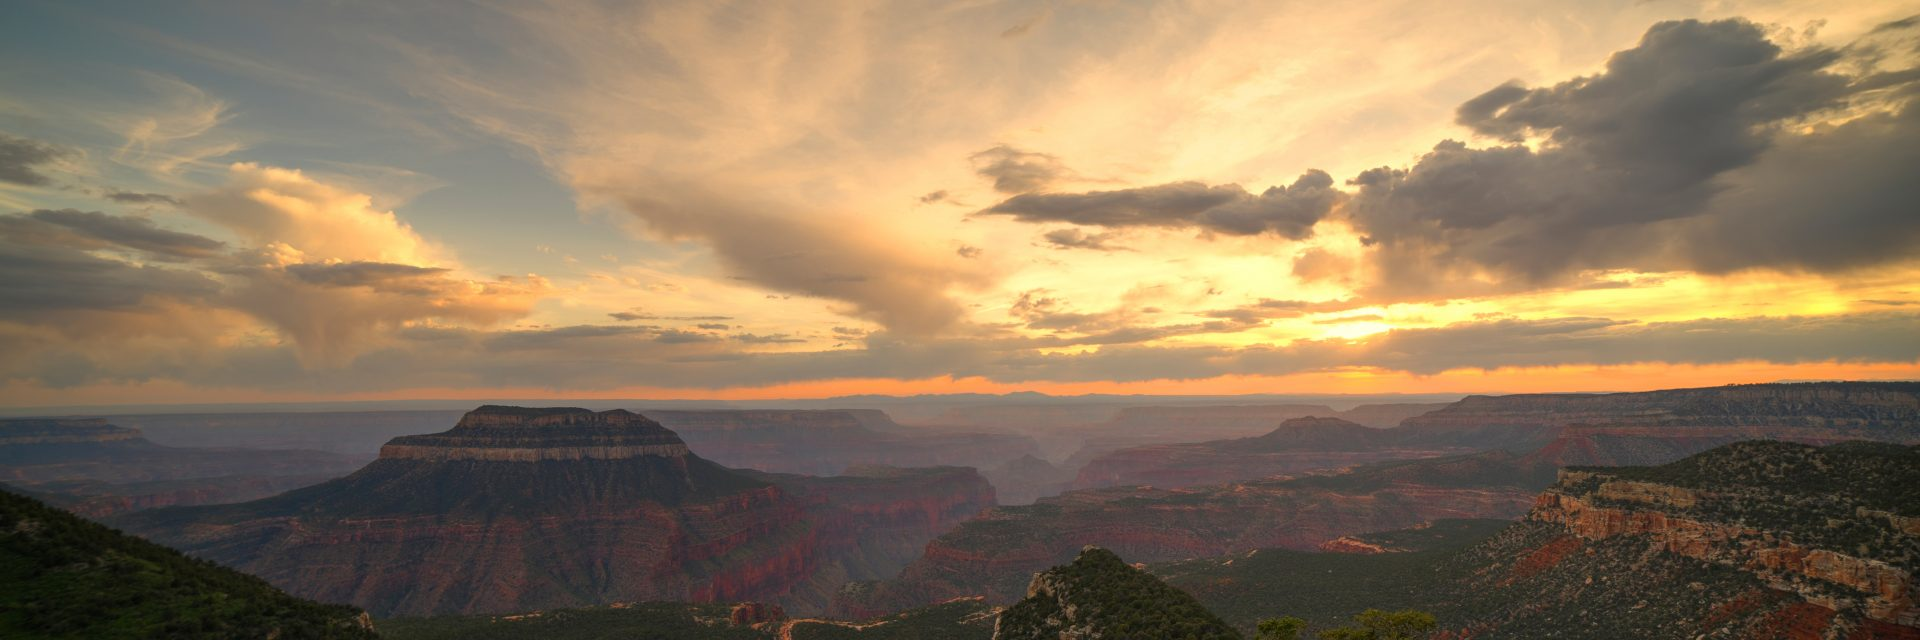 A golden sunset from North Timp Point campground, part of the 5-day guided tour on the Rainbow Rim Trail, North Rim of the Grand Canyon